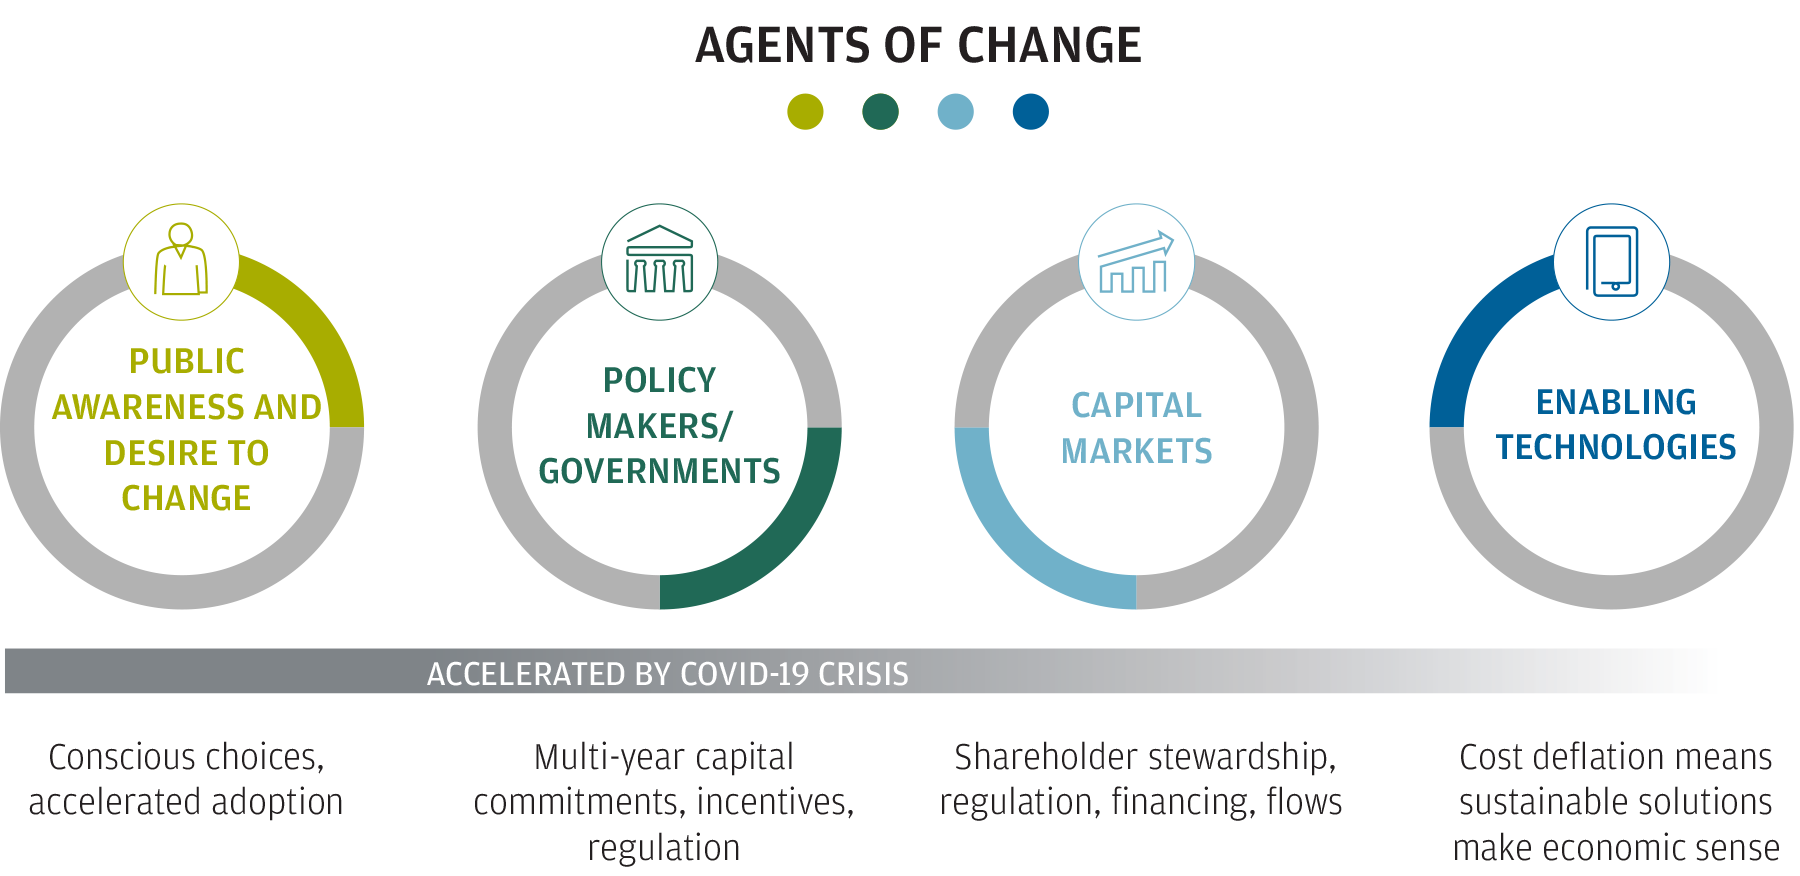 4 quadrants showing the four agents of change that are aligning to supercharge durable-recovery champions for years to come: Public Awareness / Choice, Policy Markets / Governments, Capital Markets and Enabling Technologies.